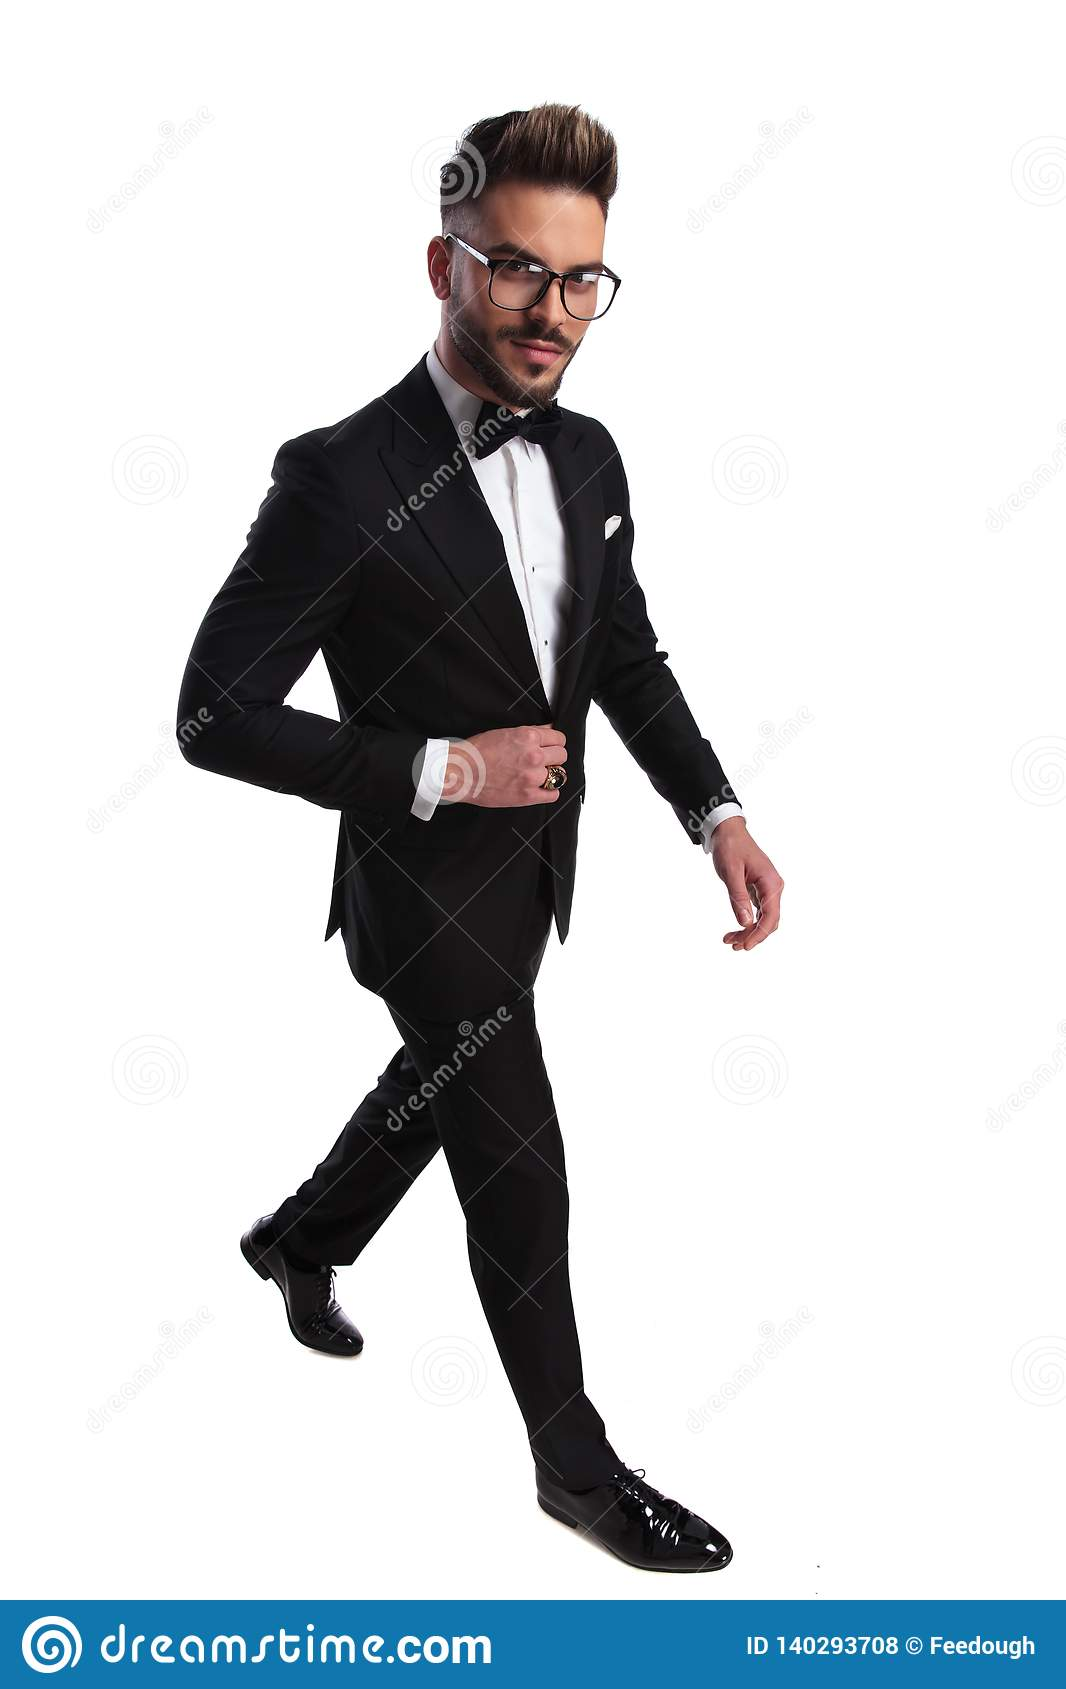 Elegant man walking while arranging his jacket